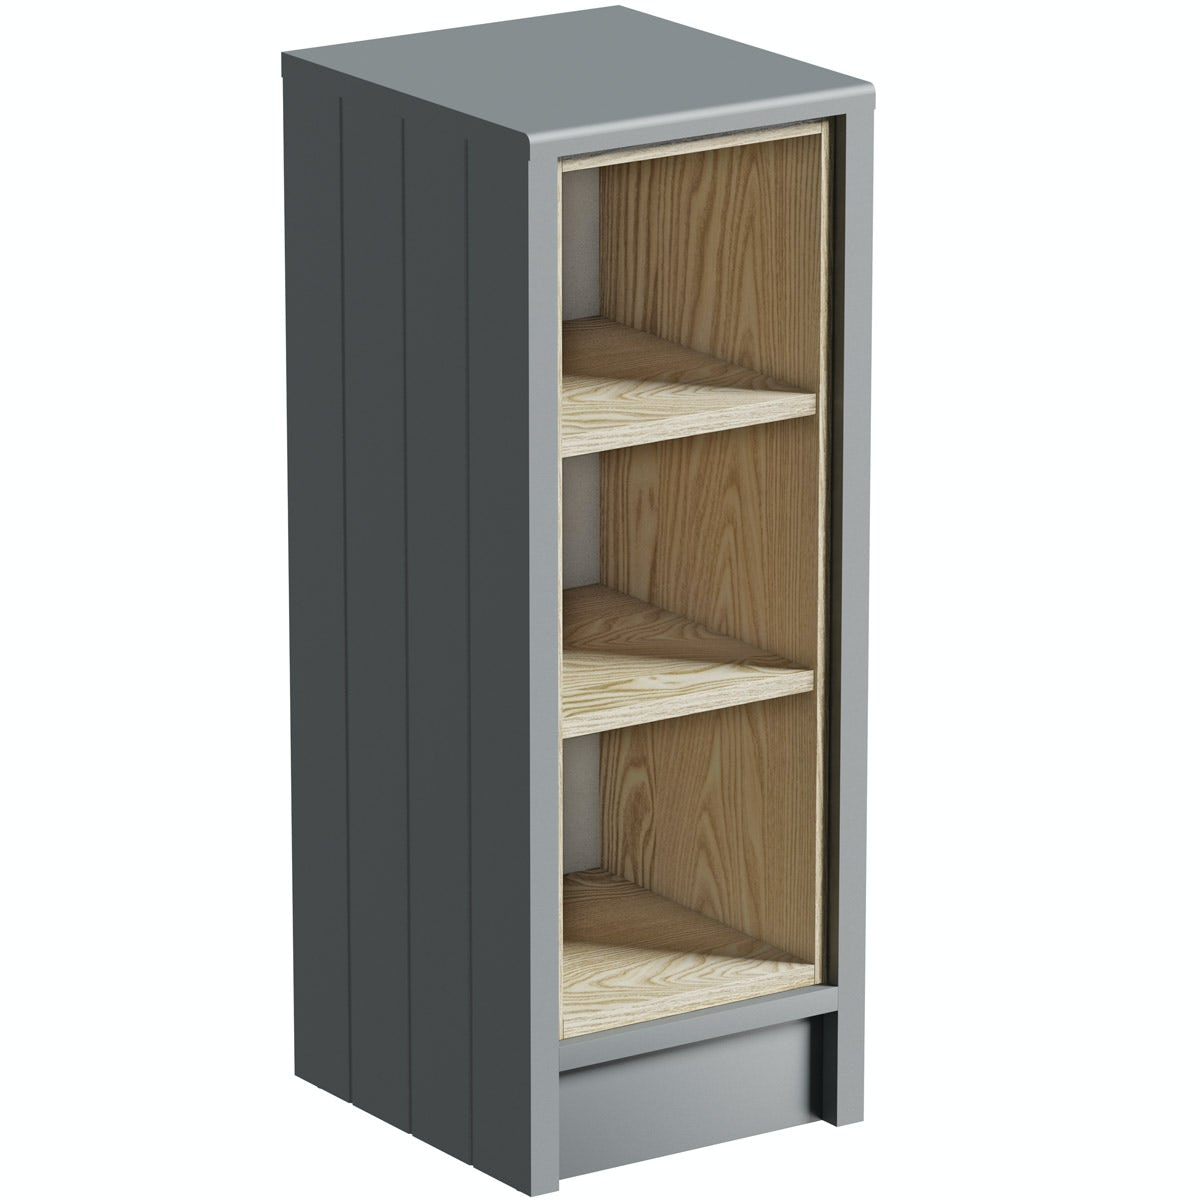 The Bath Co. Dulwich stone grey open storage unit